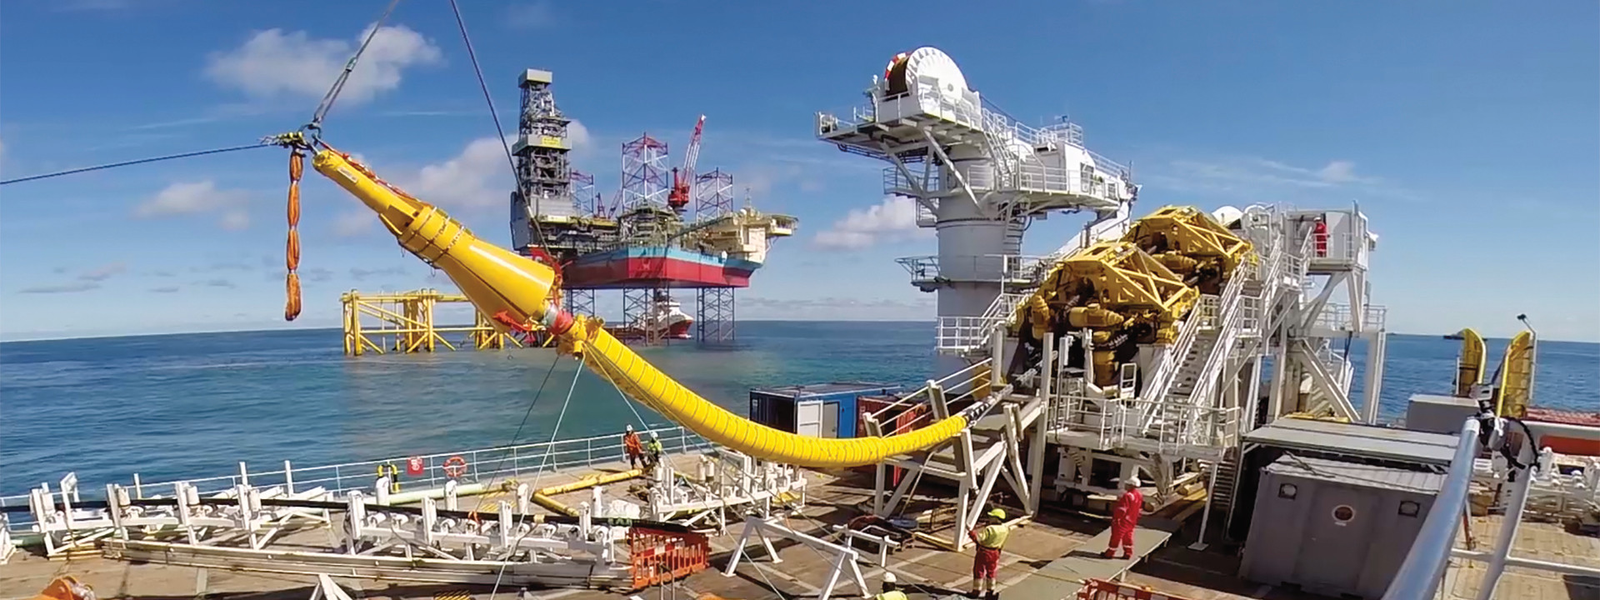 Cable laying vessel NKT Victoria installing an offshore cable with platform Martin Linge in the background